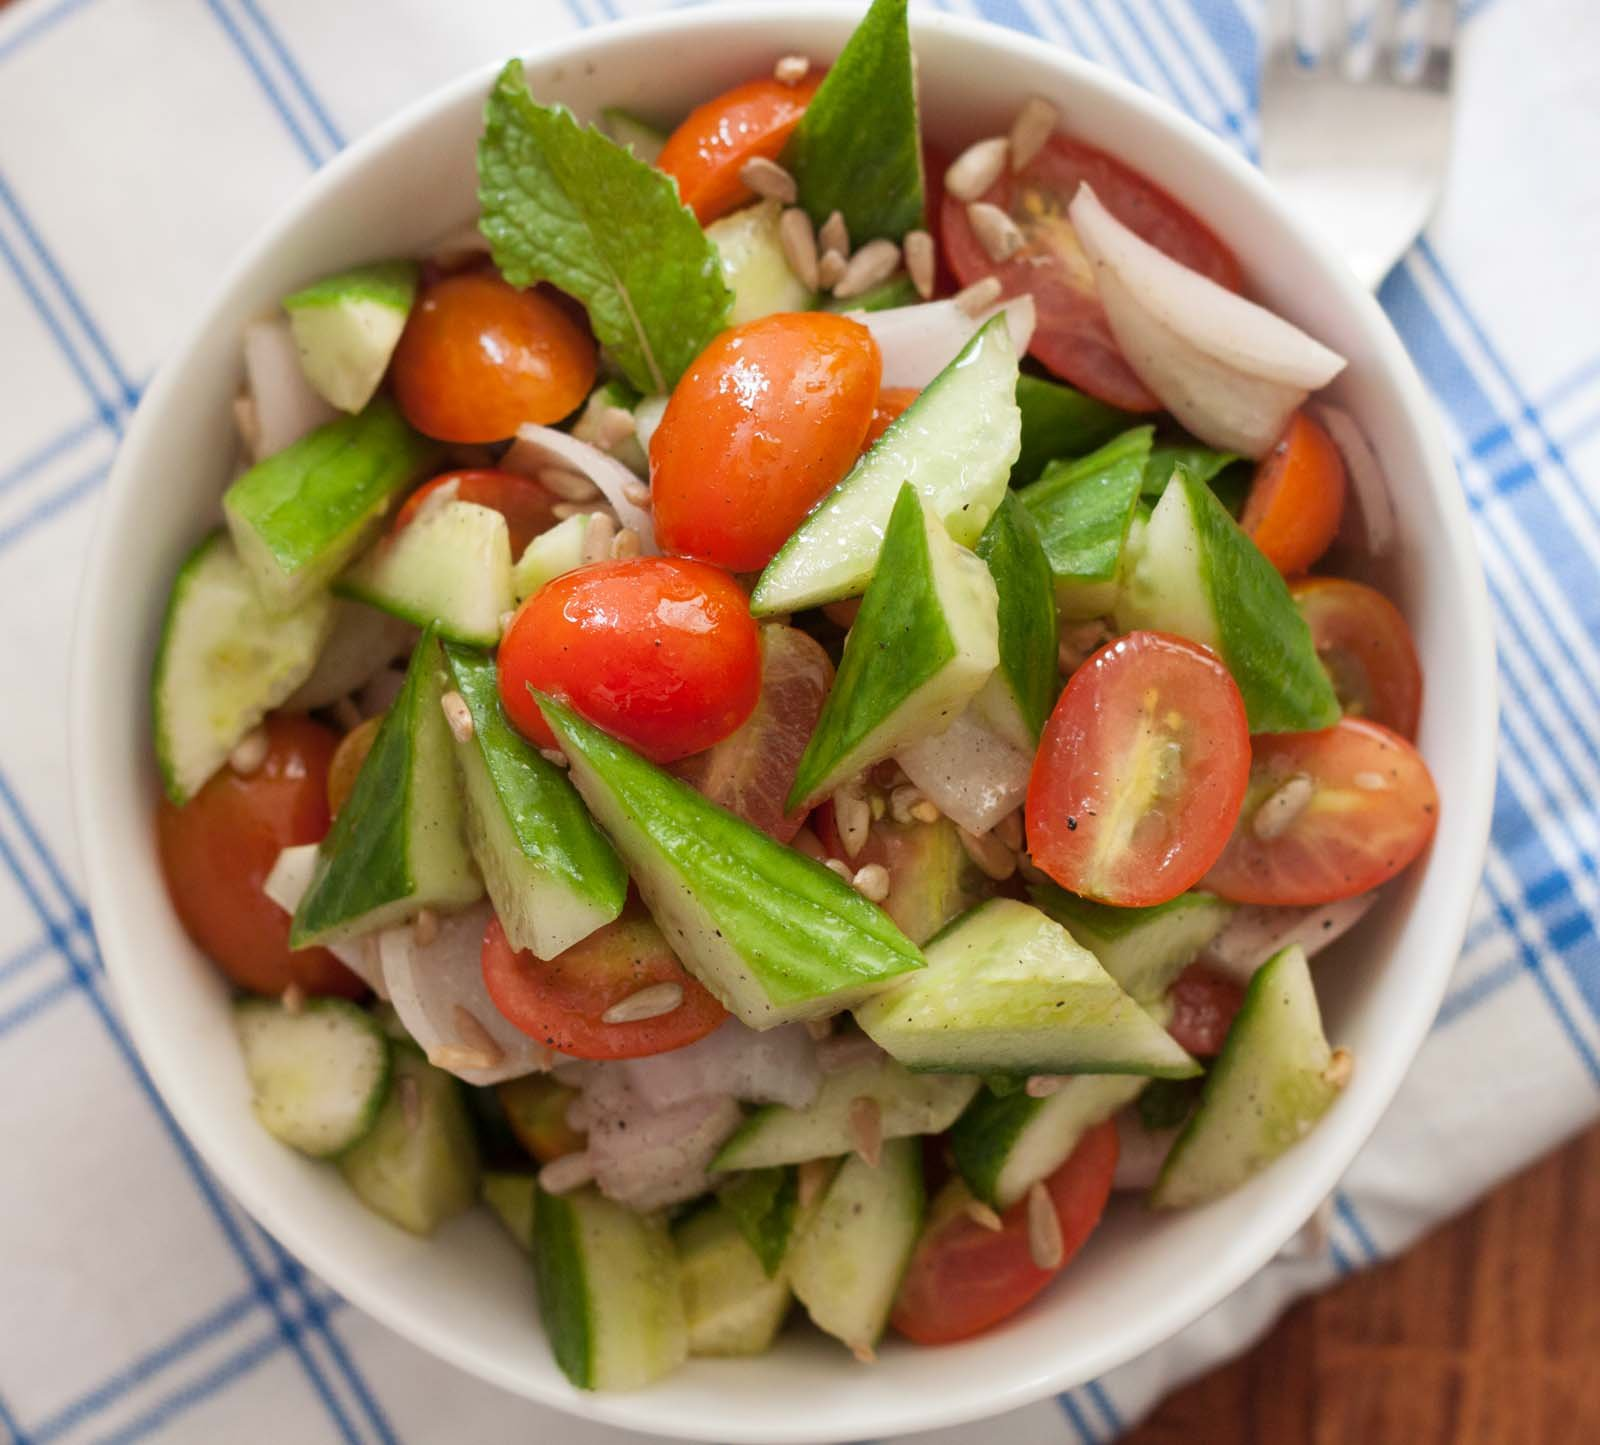 Cherry tomatoes, cucumber and onion salad